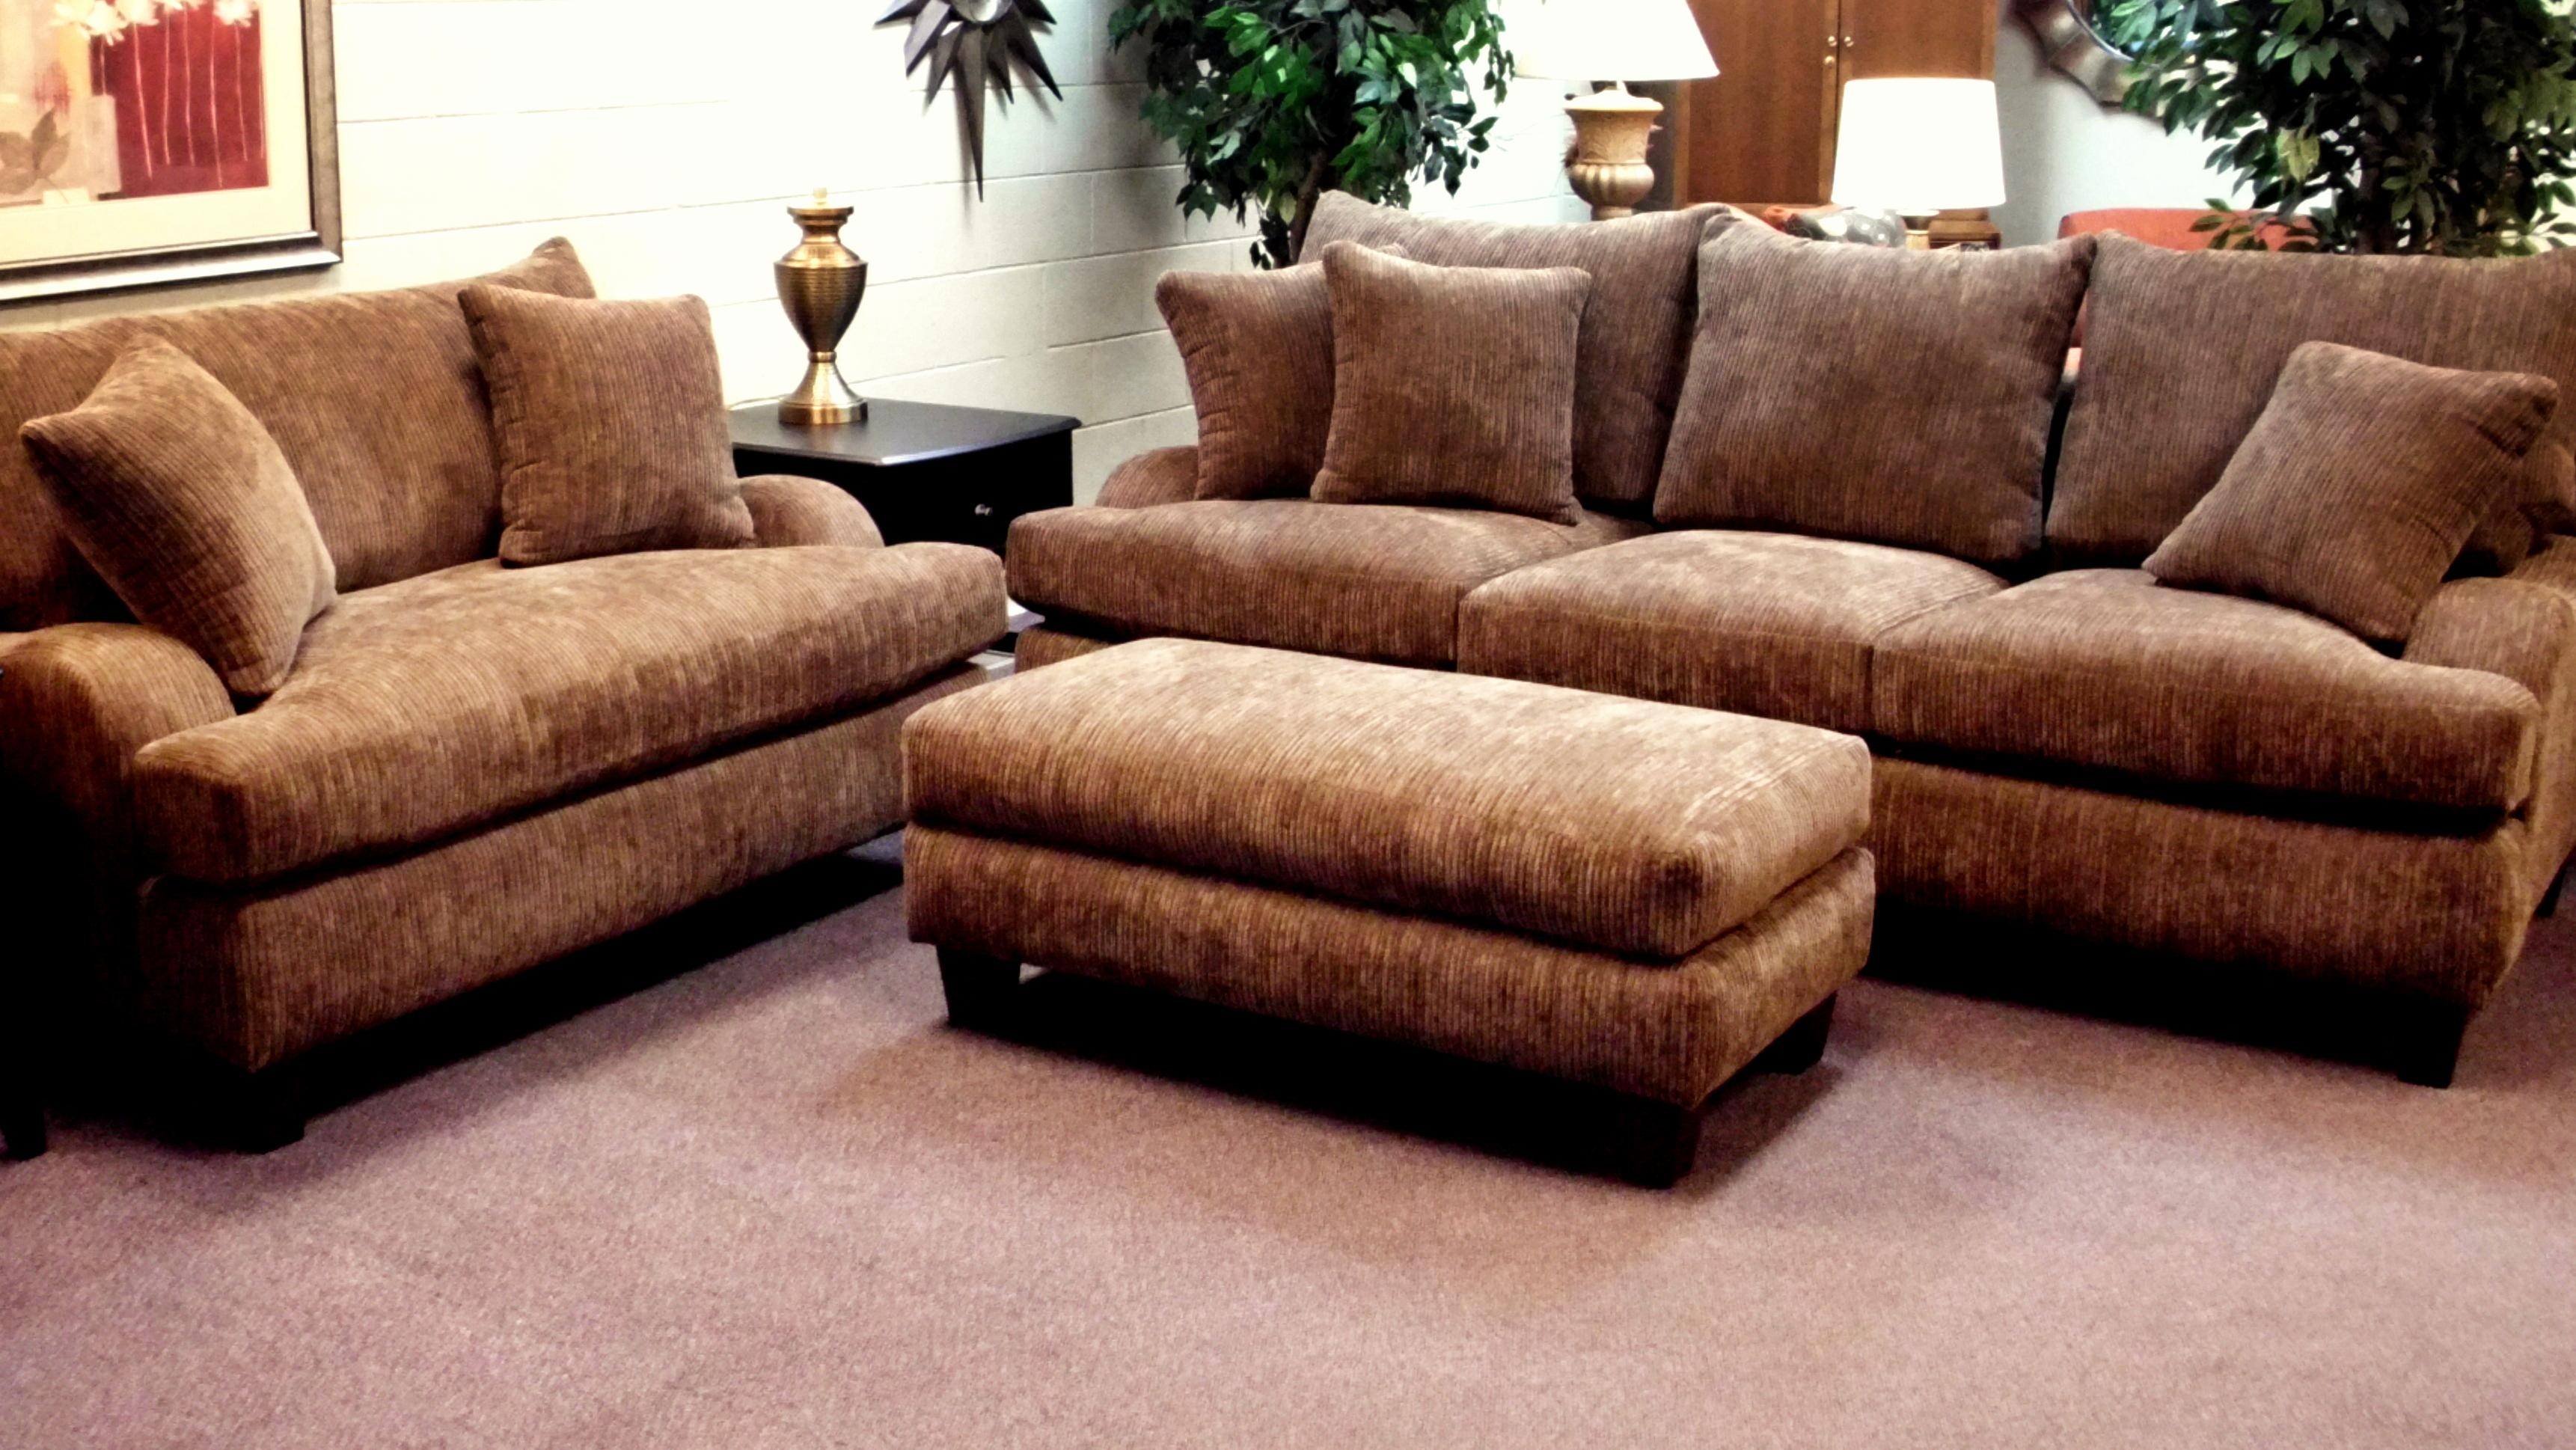 Furniture: Comfy Design Of Oversized Couch For Charming Living For Deep Cushioned Sofas (Image 13 of 22)